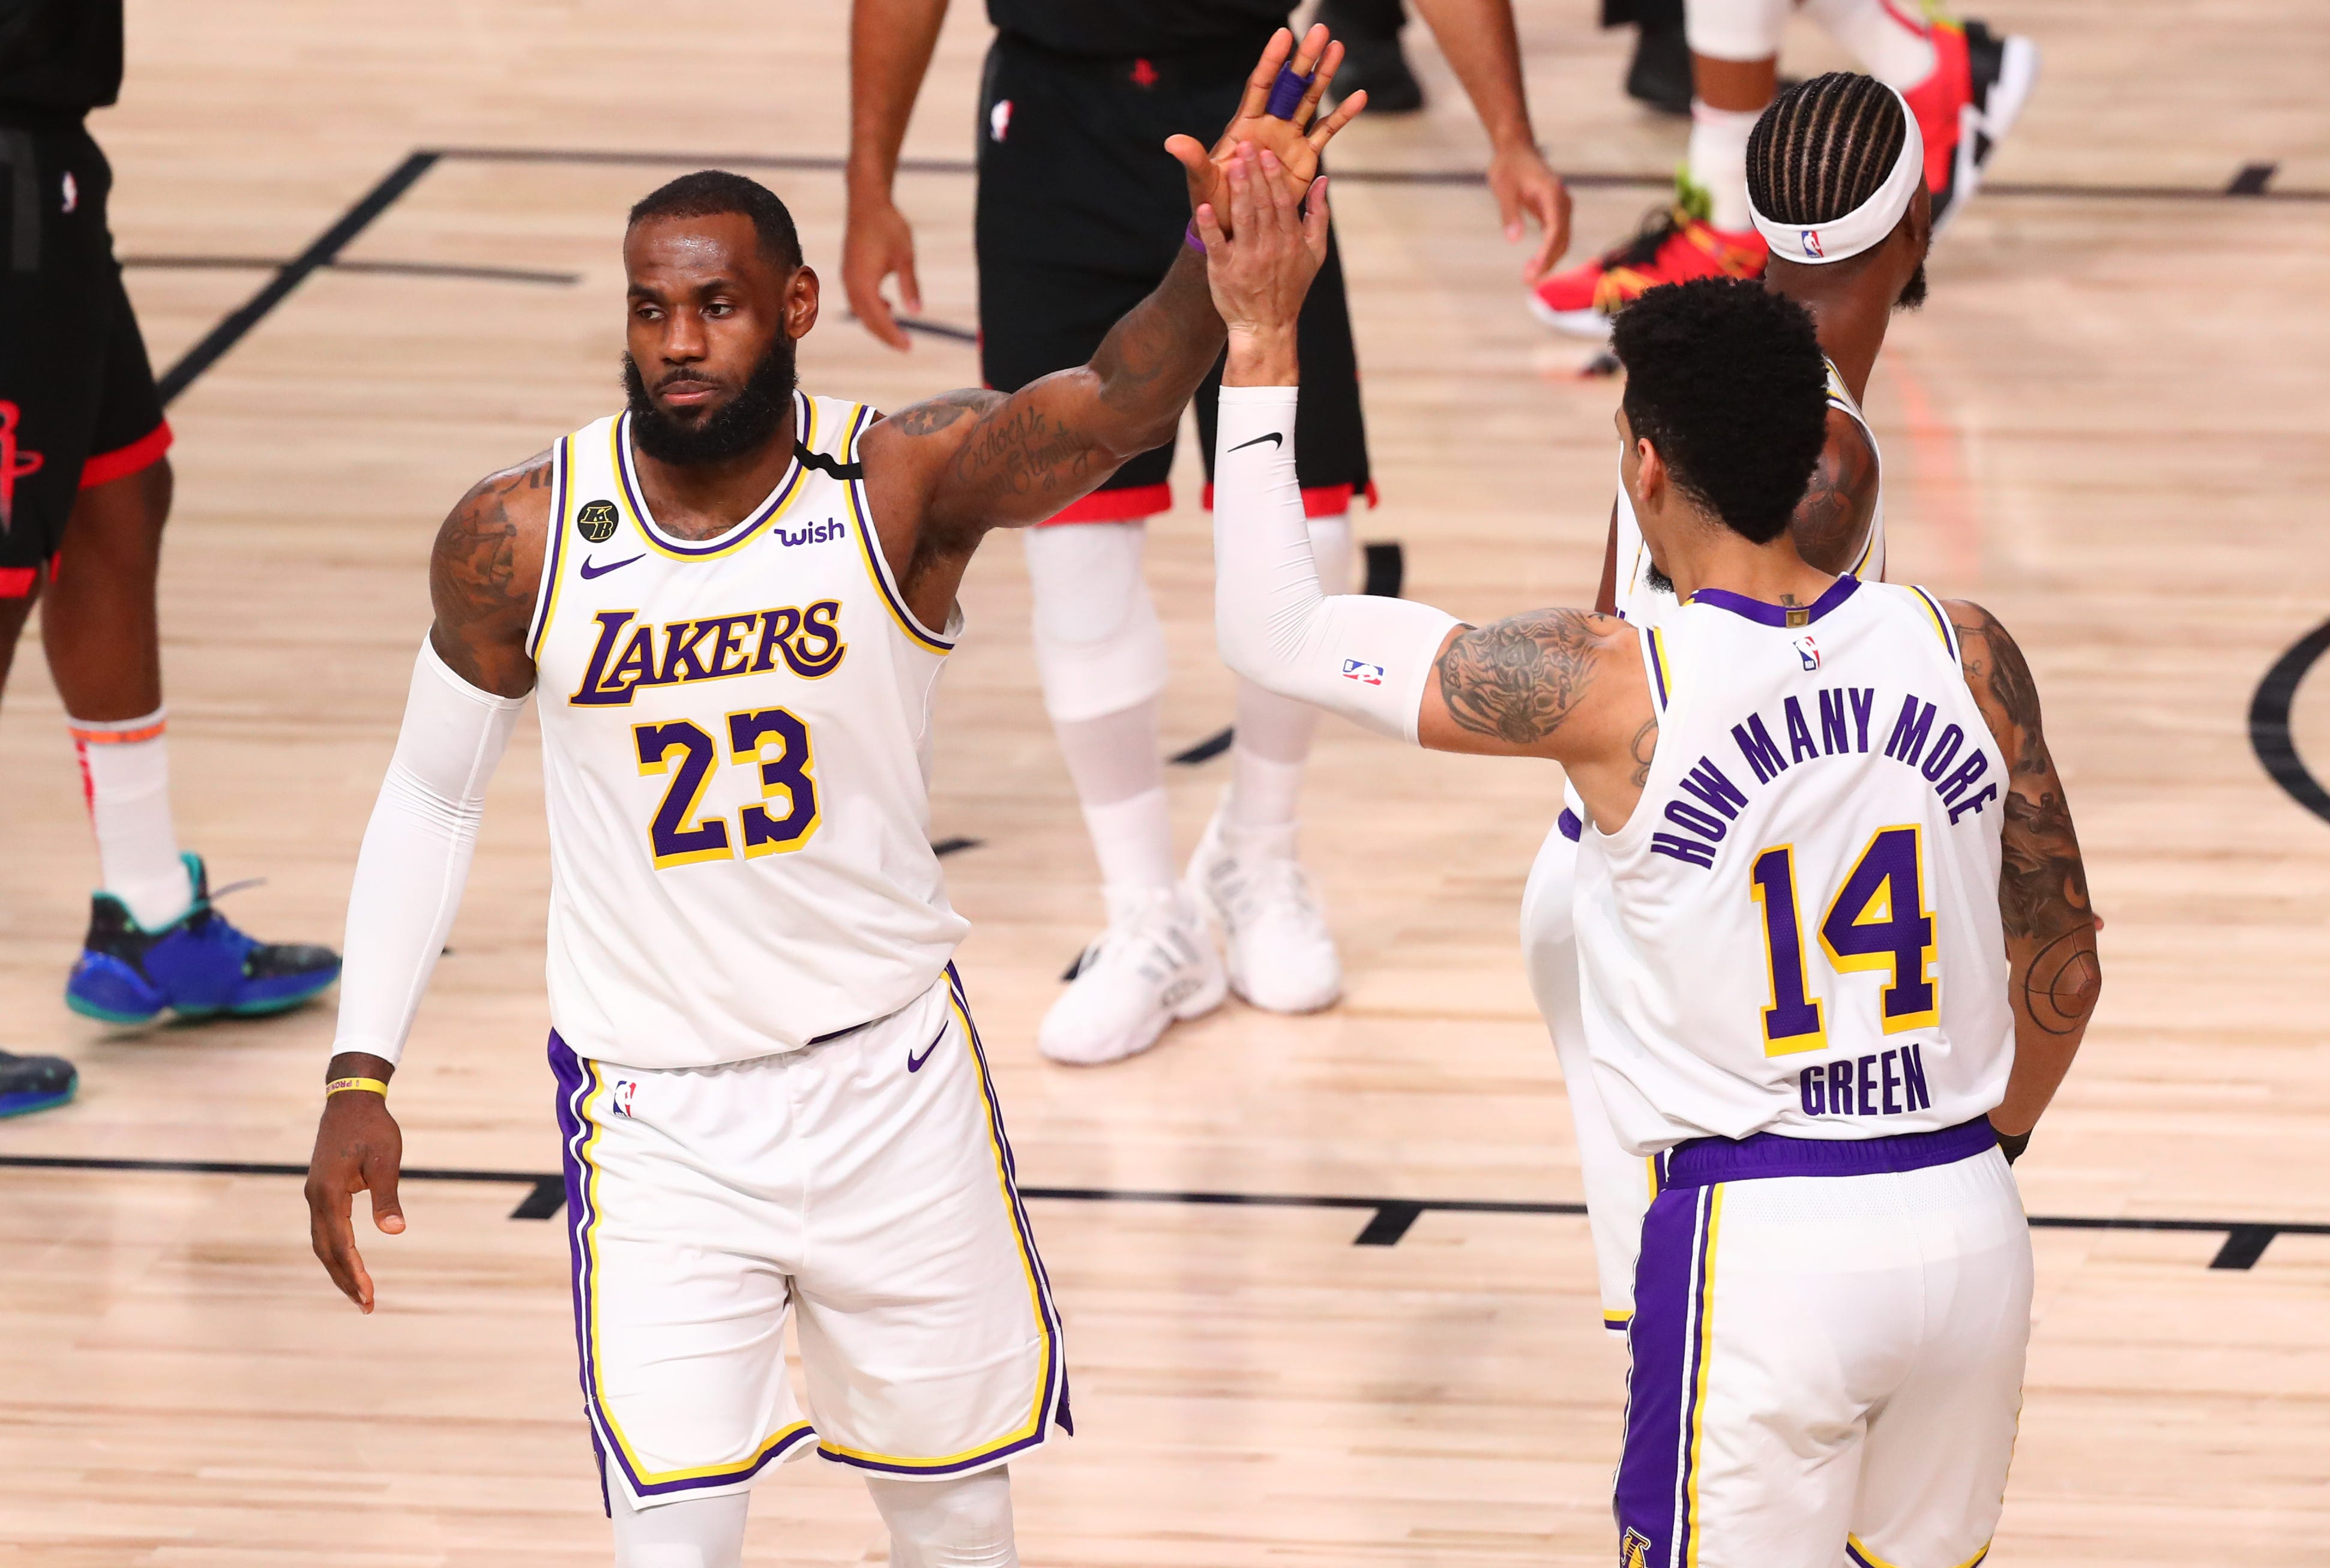 Lakers finish off Rockets with Game 5 rout to reach Western Conference finals